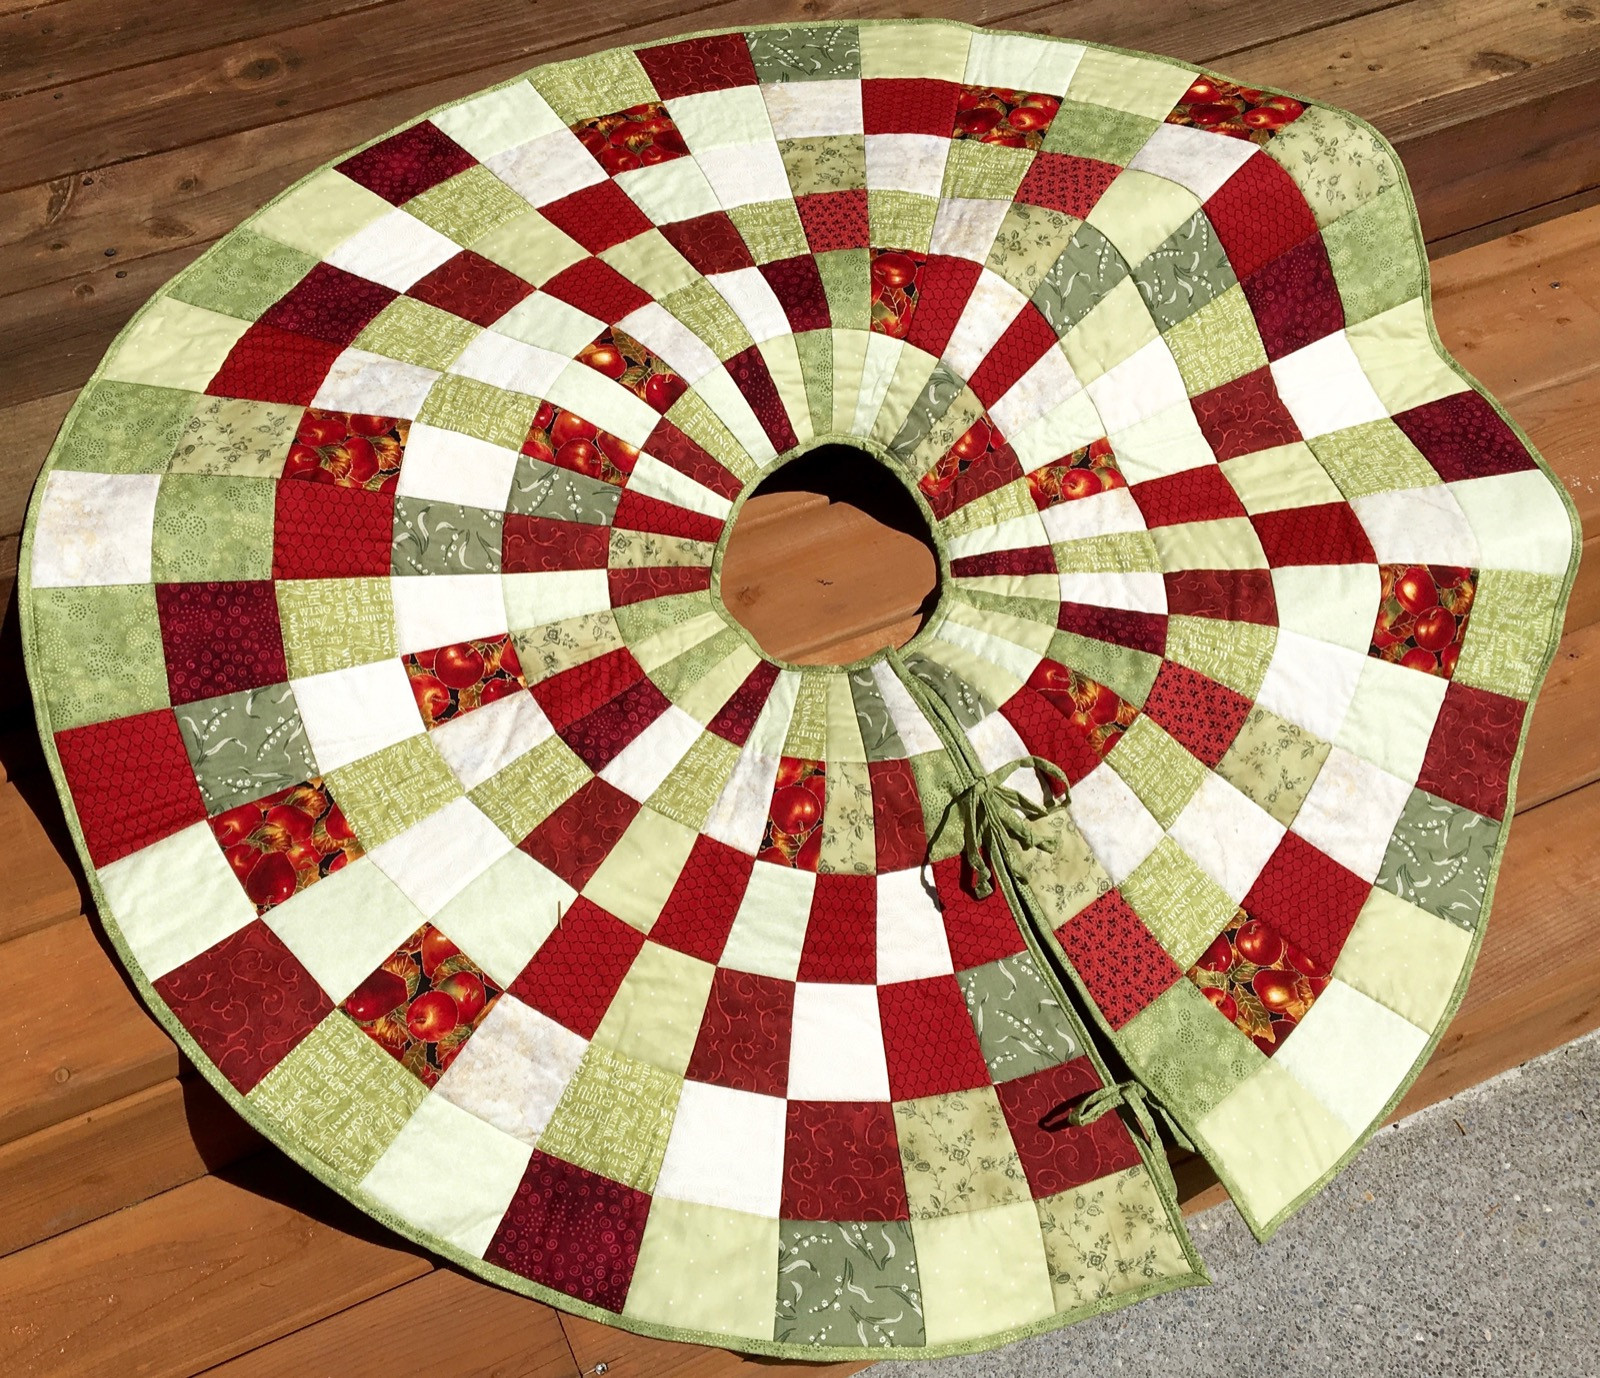 Best Of 20 Free Quilted Christmas Tree Skirt Patterns Free Tree Skirt Patterns Of Brilliant 44 Pics Free Tree Skirt Patterns